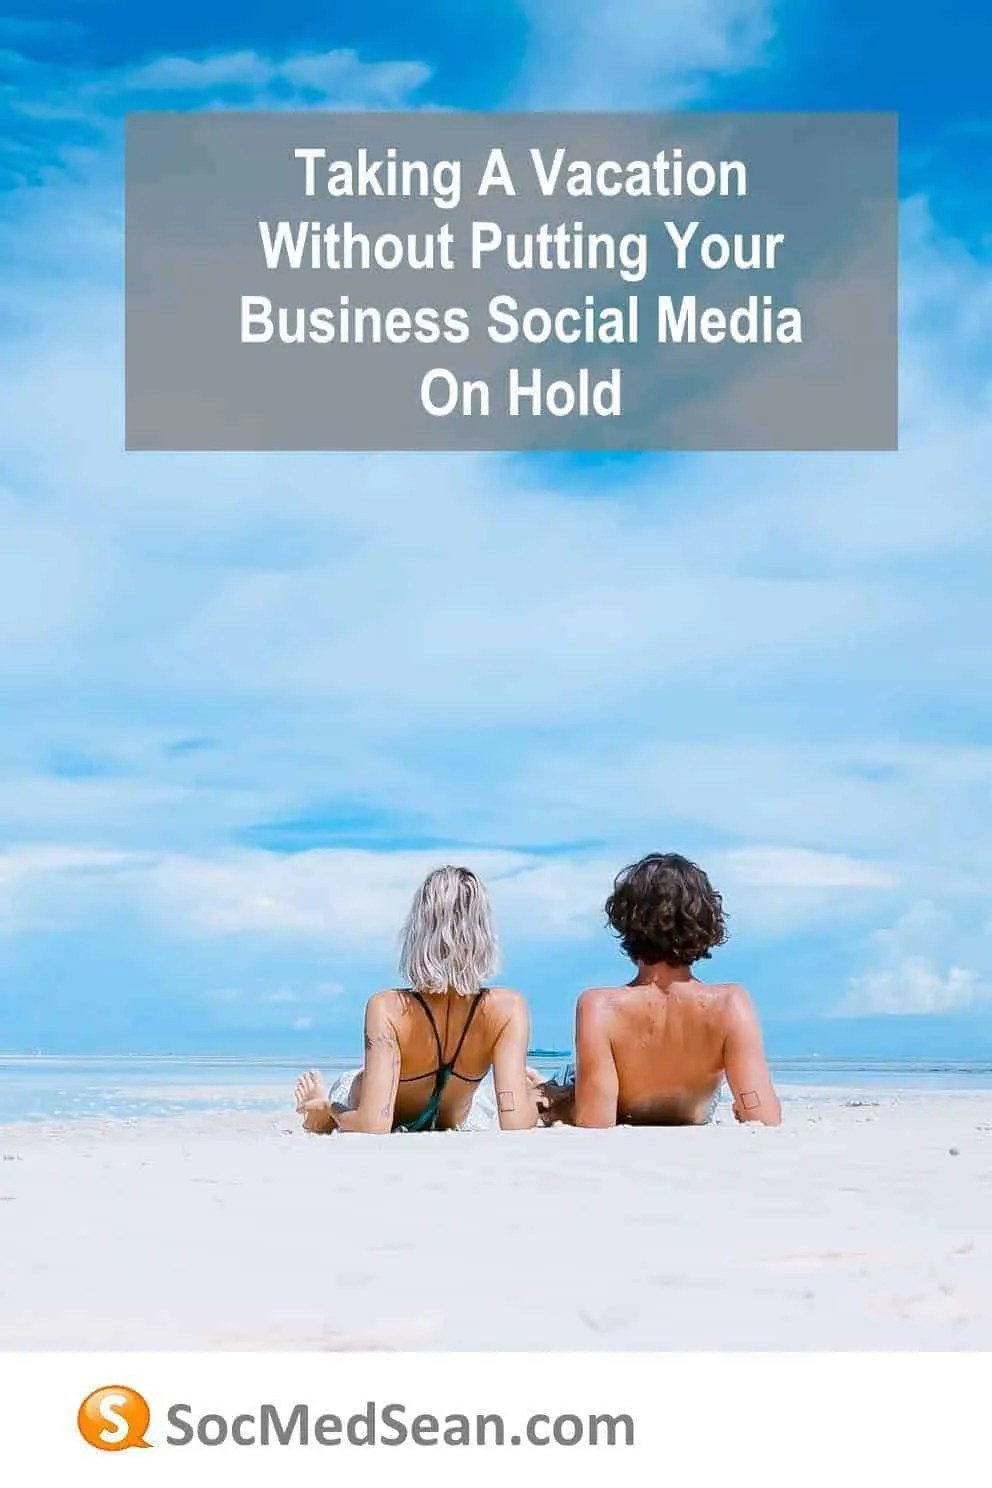 Tips for taking a vacation without putting your business social media on hold.